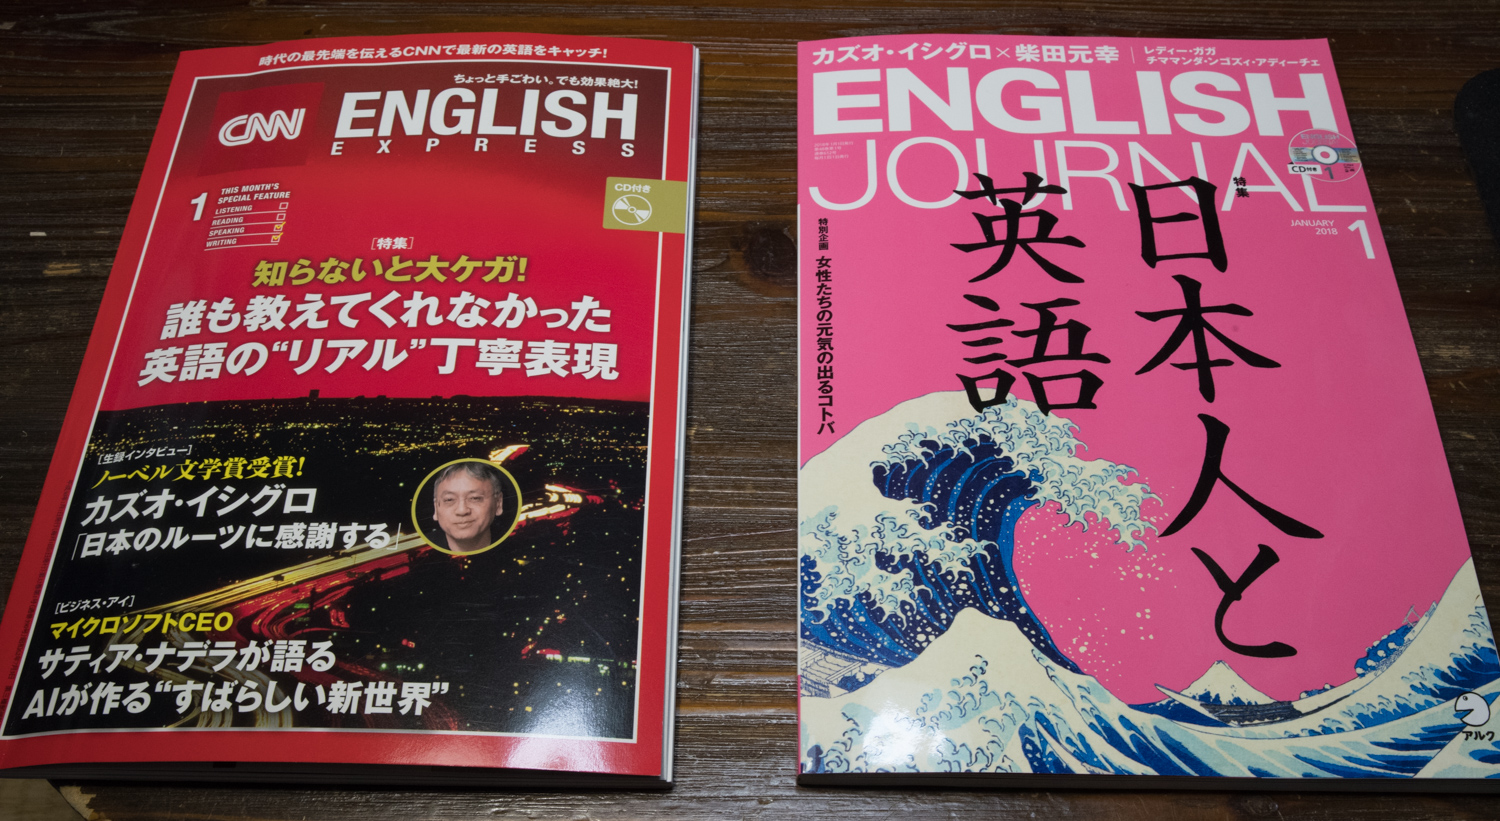 英語学習雑誌2誌の比較-CNN English ExpressとEnglish Journal